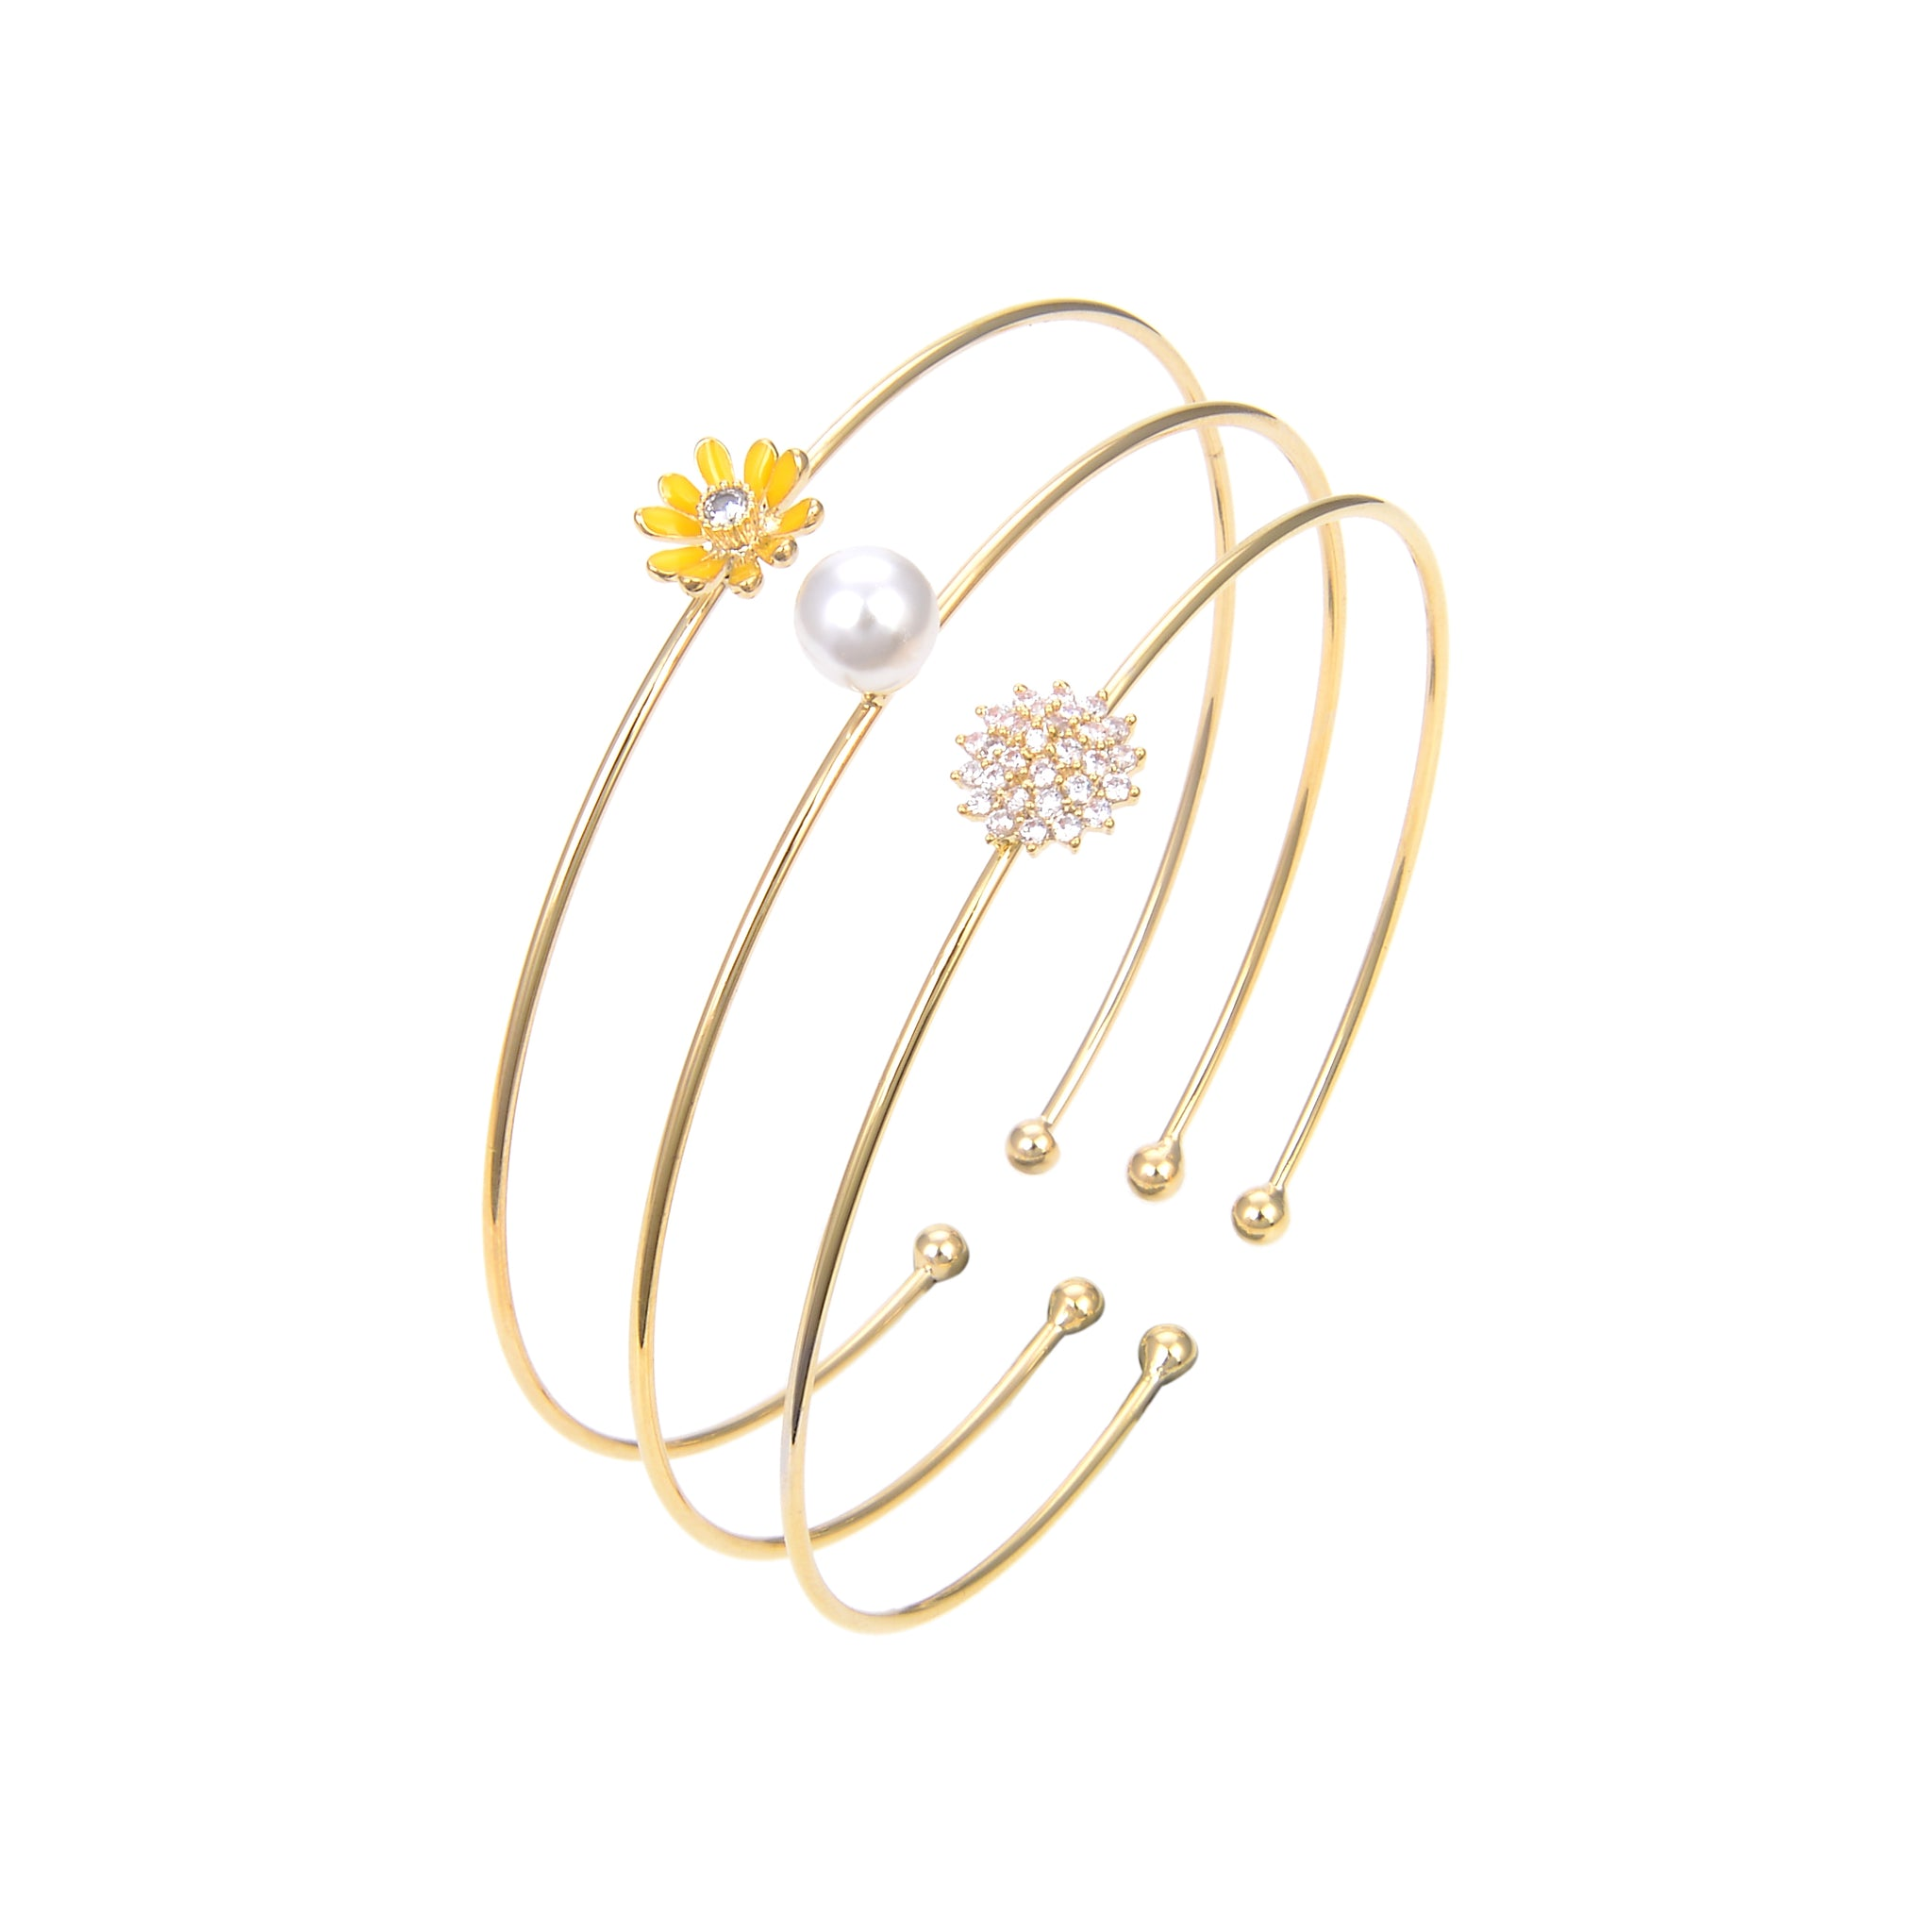 Gold Plated CZ Cubic Zirconia Pearl Bangle Bracelet, Flower Print CZ Bangle Bracele